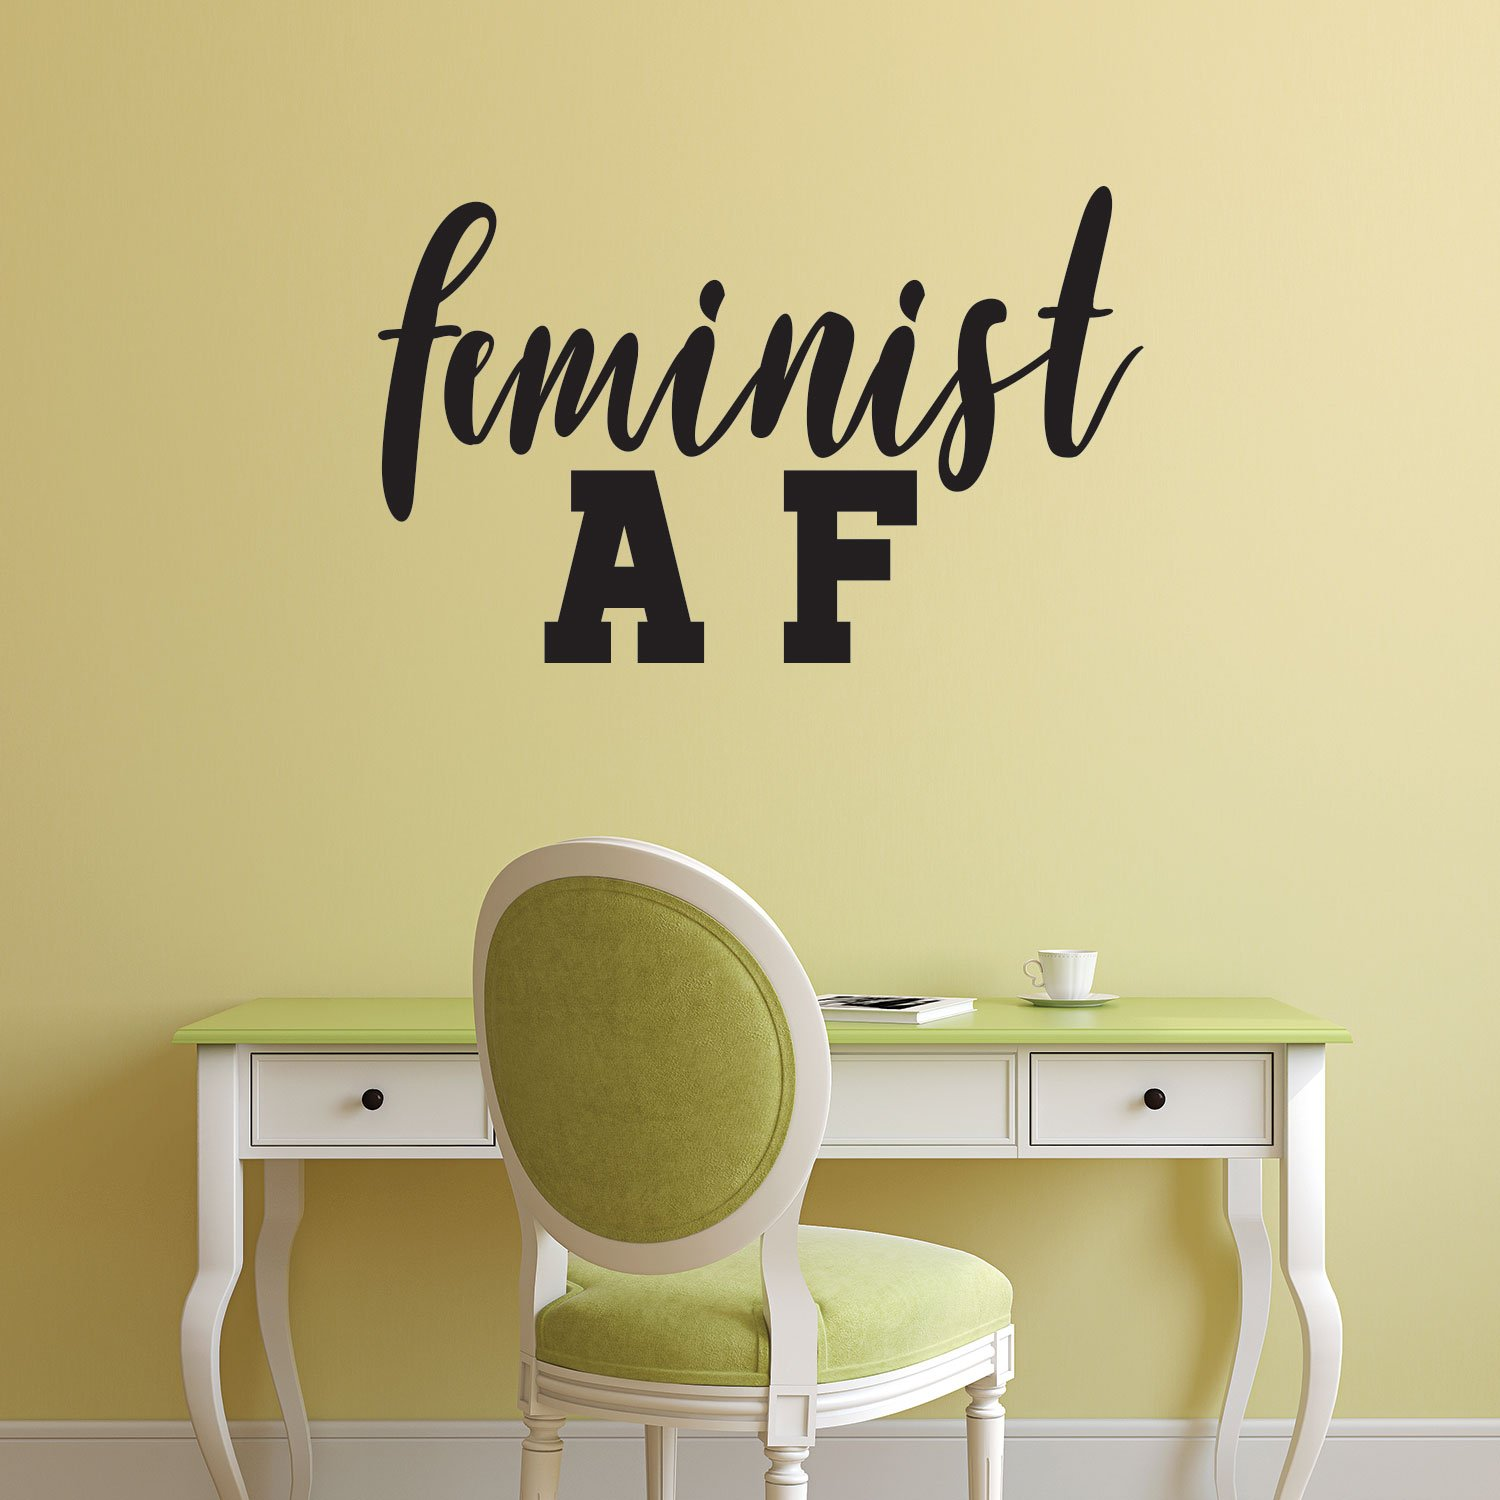 Feminist AF Quote - Wall Art Decal - 14'' x 23'' - Life Quotes Vinyl Wall Art - Inspirational Women Empowerment - Girl Power Novelty Gift - Bedroom Living Room Wall Art